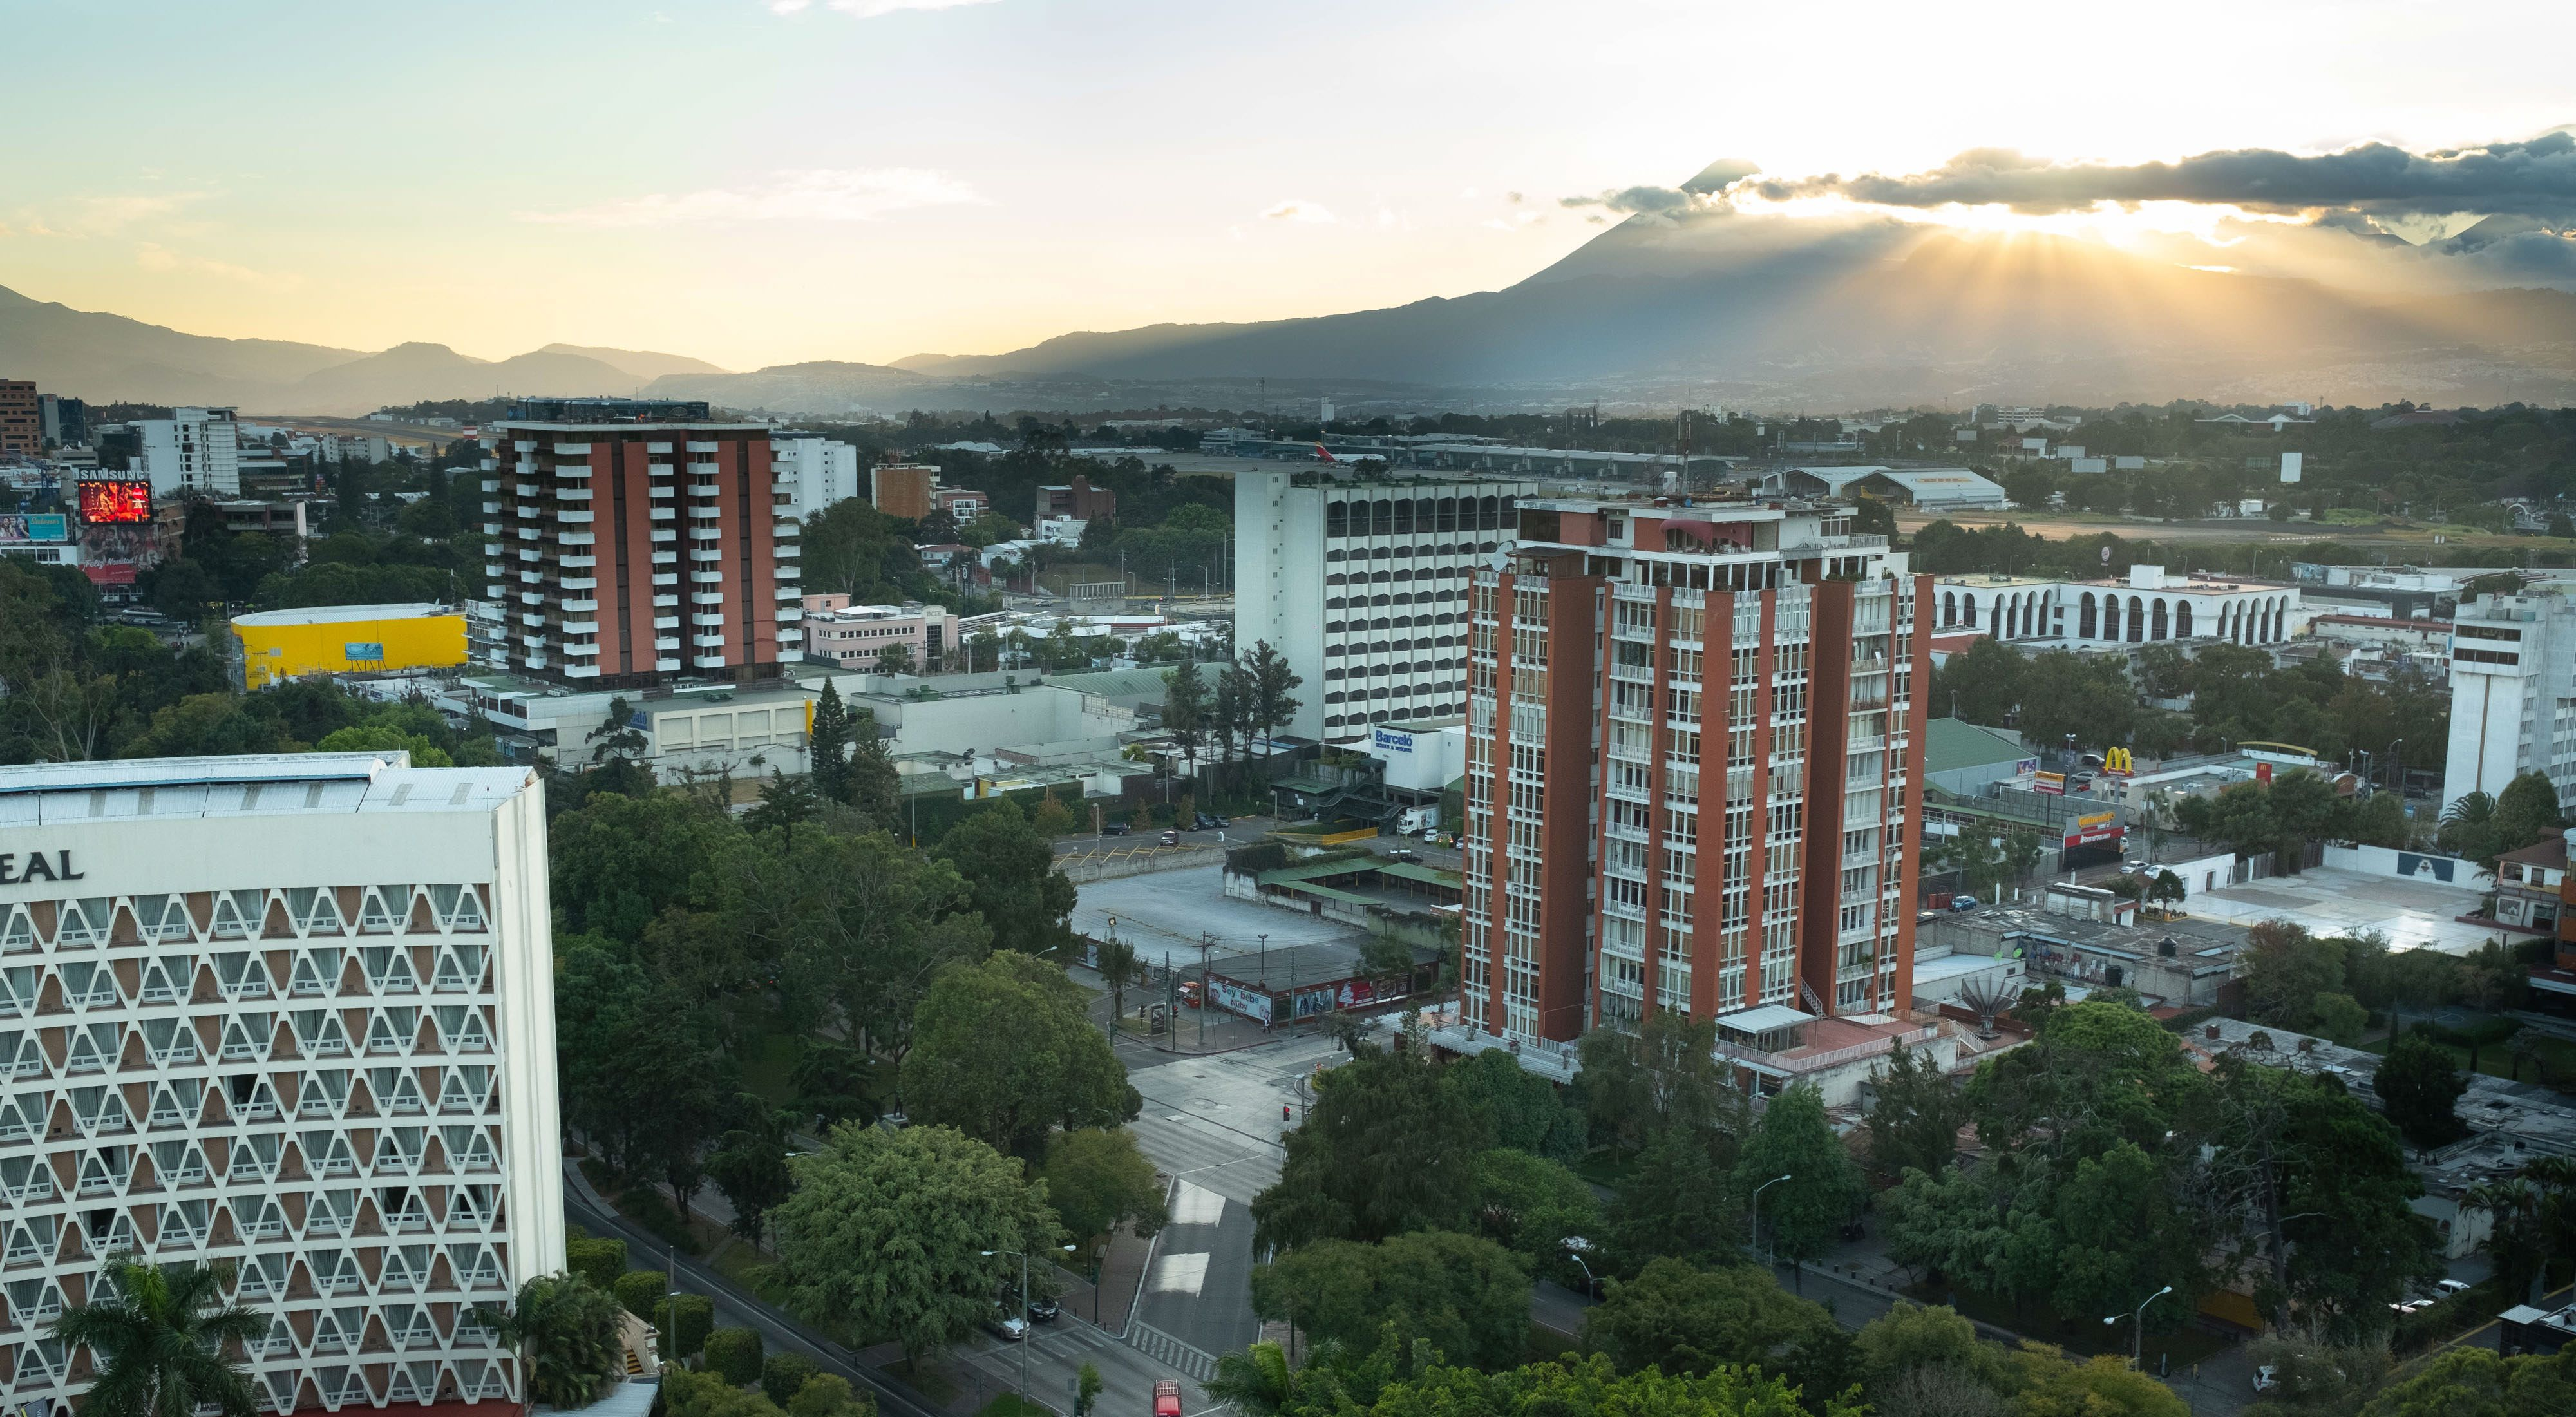 Urban views of central Guatemala City as seen from a top floor window in a building. Zone 10, Guatemala City, Guatemala. December 2017. TNC's Guatemala City Water Fund Project